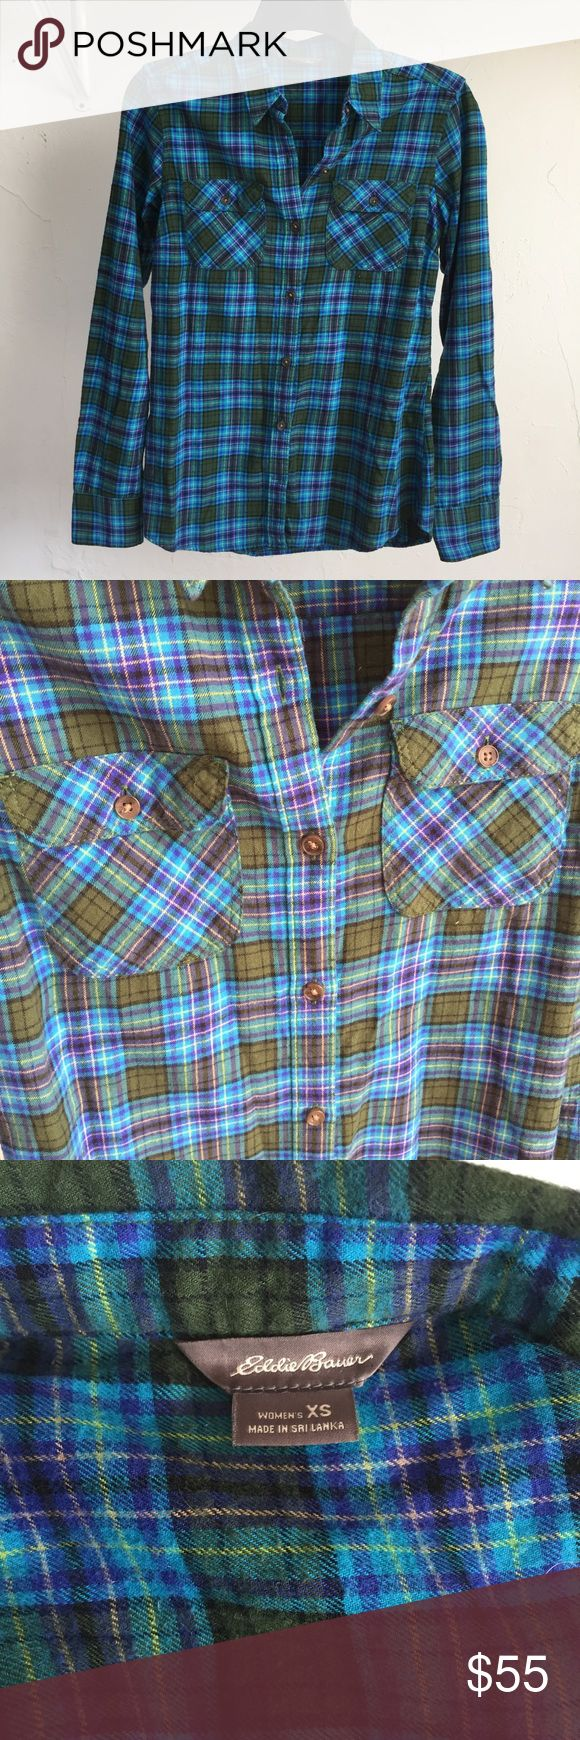 Eddie Bauer blue and green flannel shirt Bright and colorful! Eddie Bauer Tops Tees - Long Sleeve